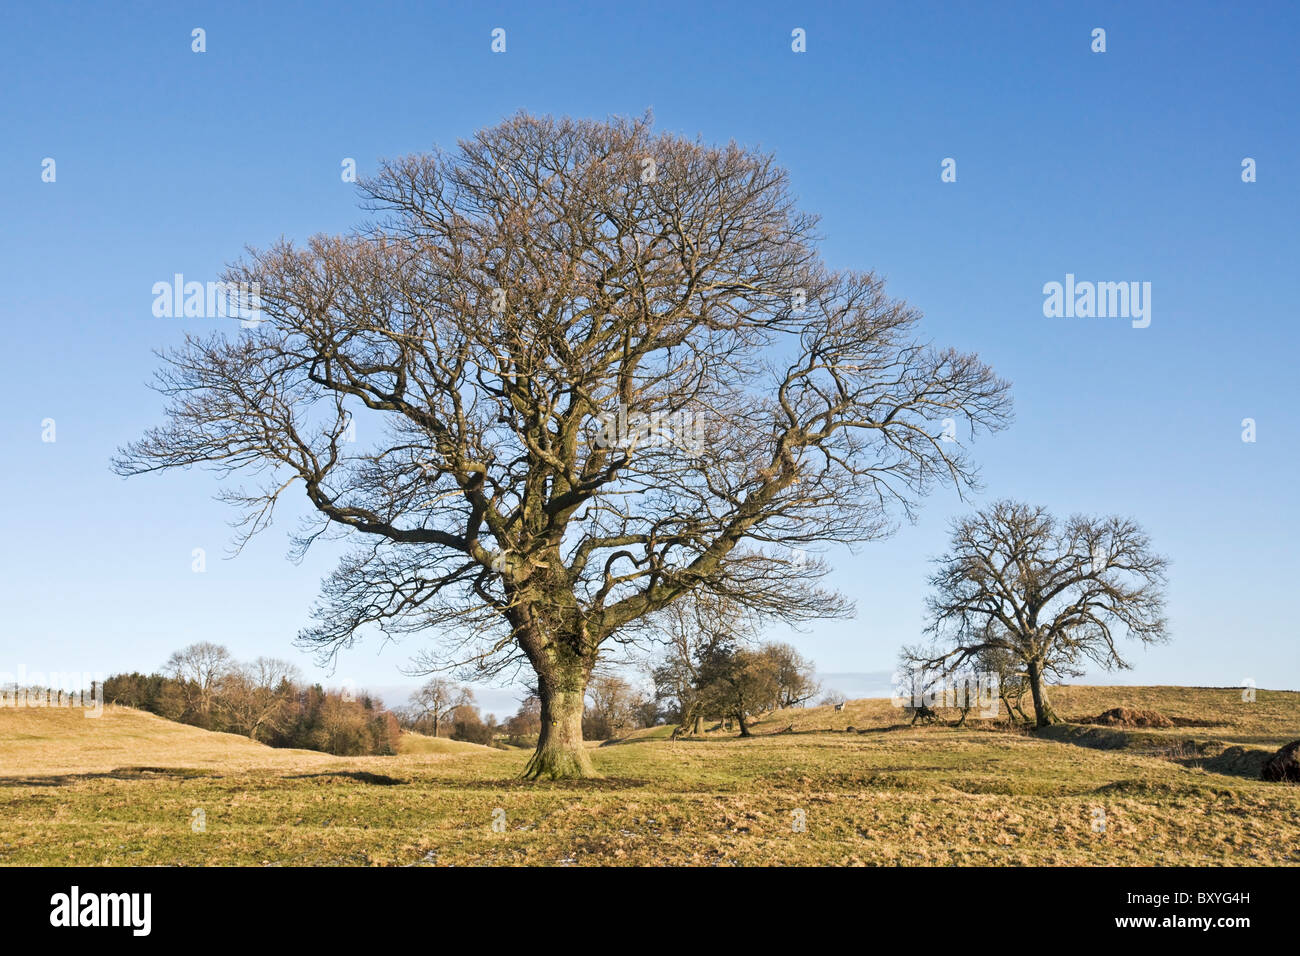 Ash trees in winter growing on upland grazing land in North Yorkshire. - Stock Image